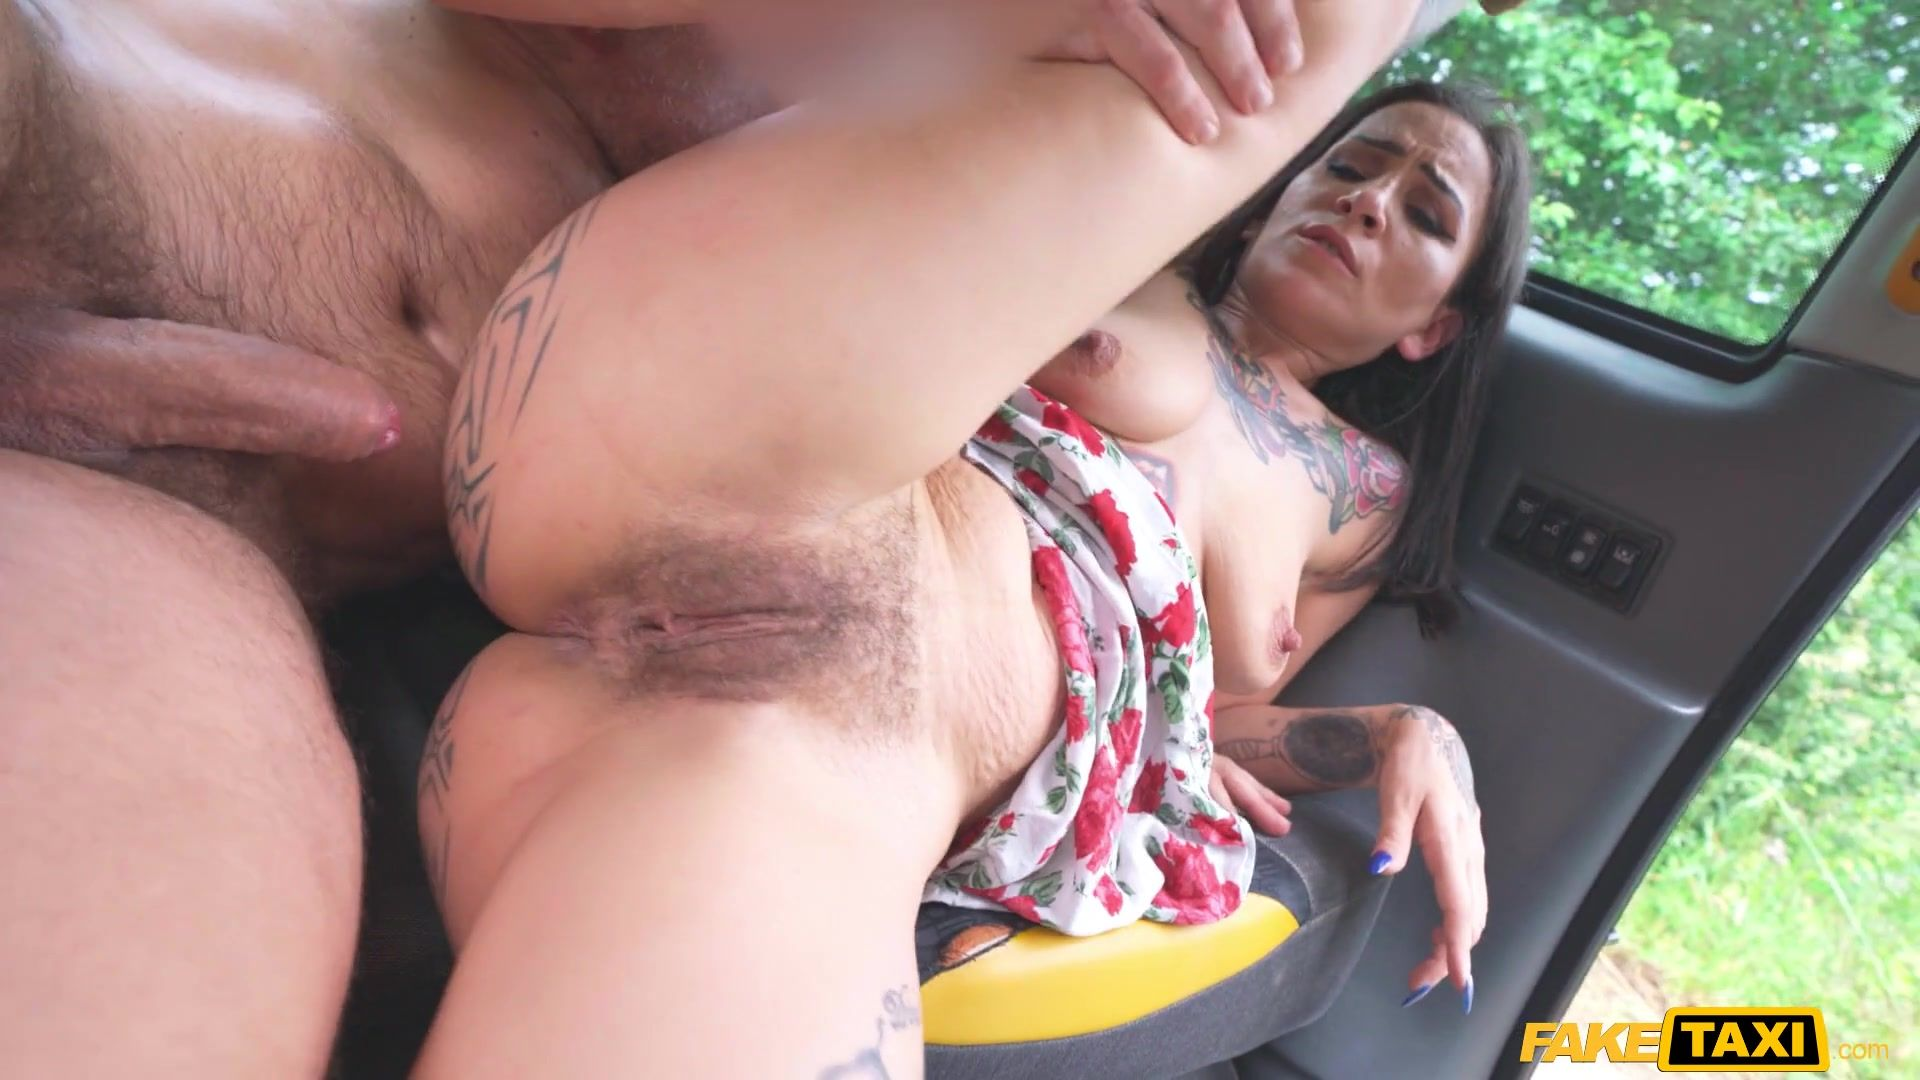 Fake Taxi - Sex Doll Watches Cabbie Cheat 2 -